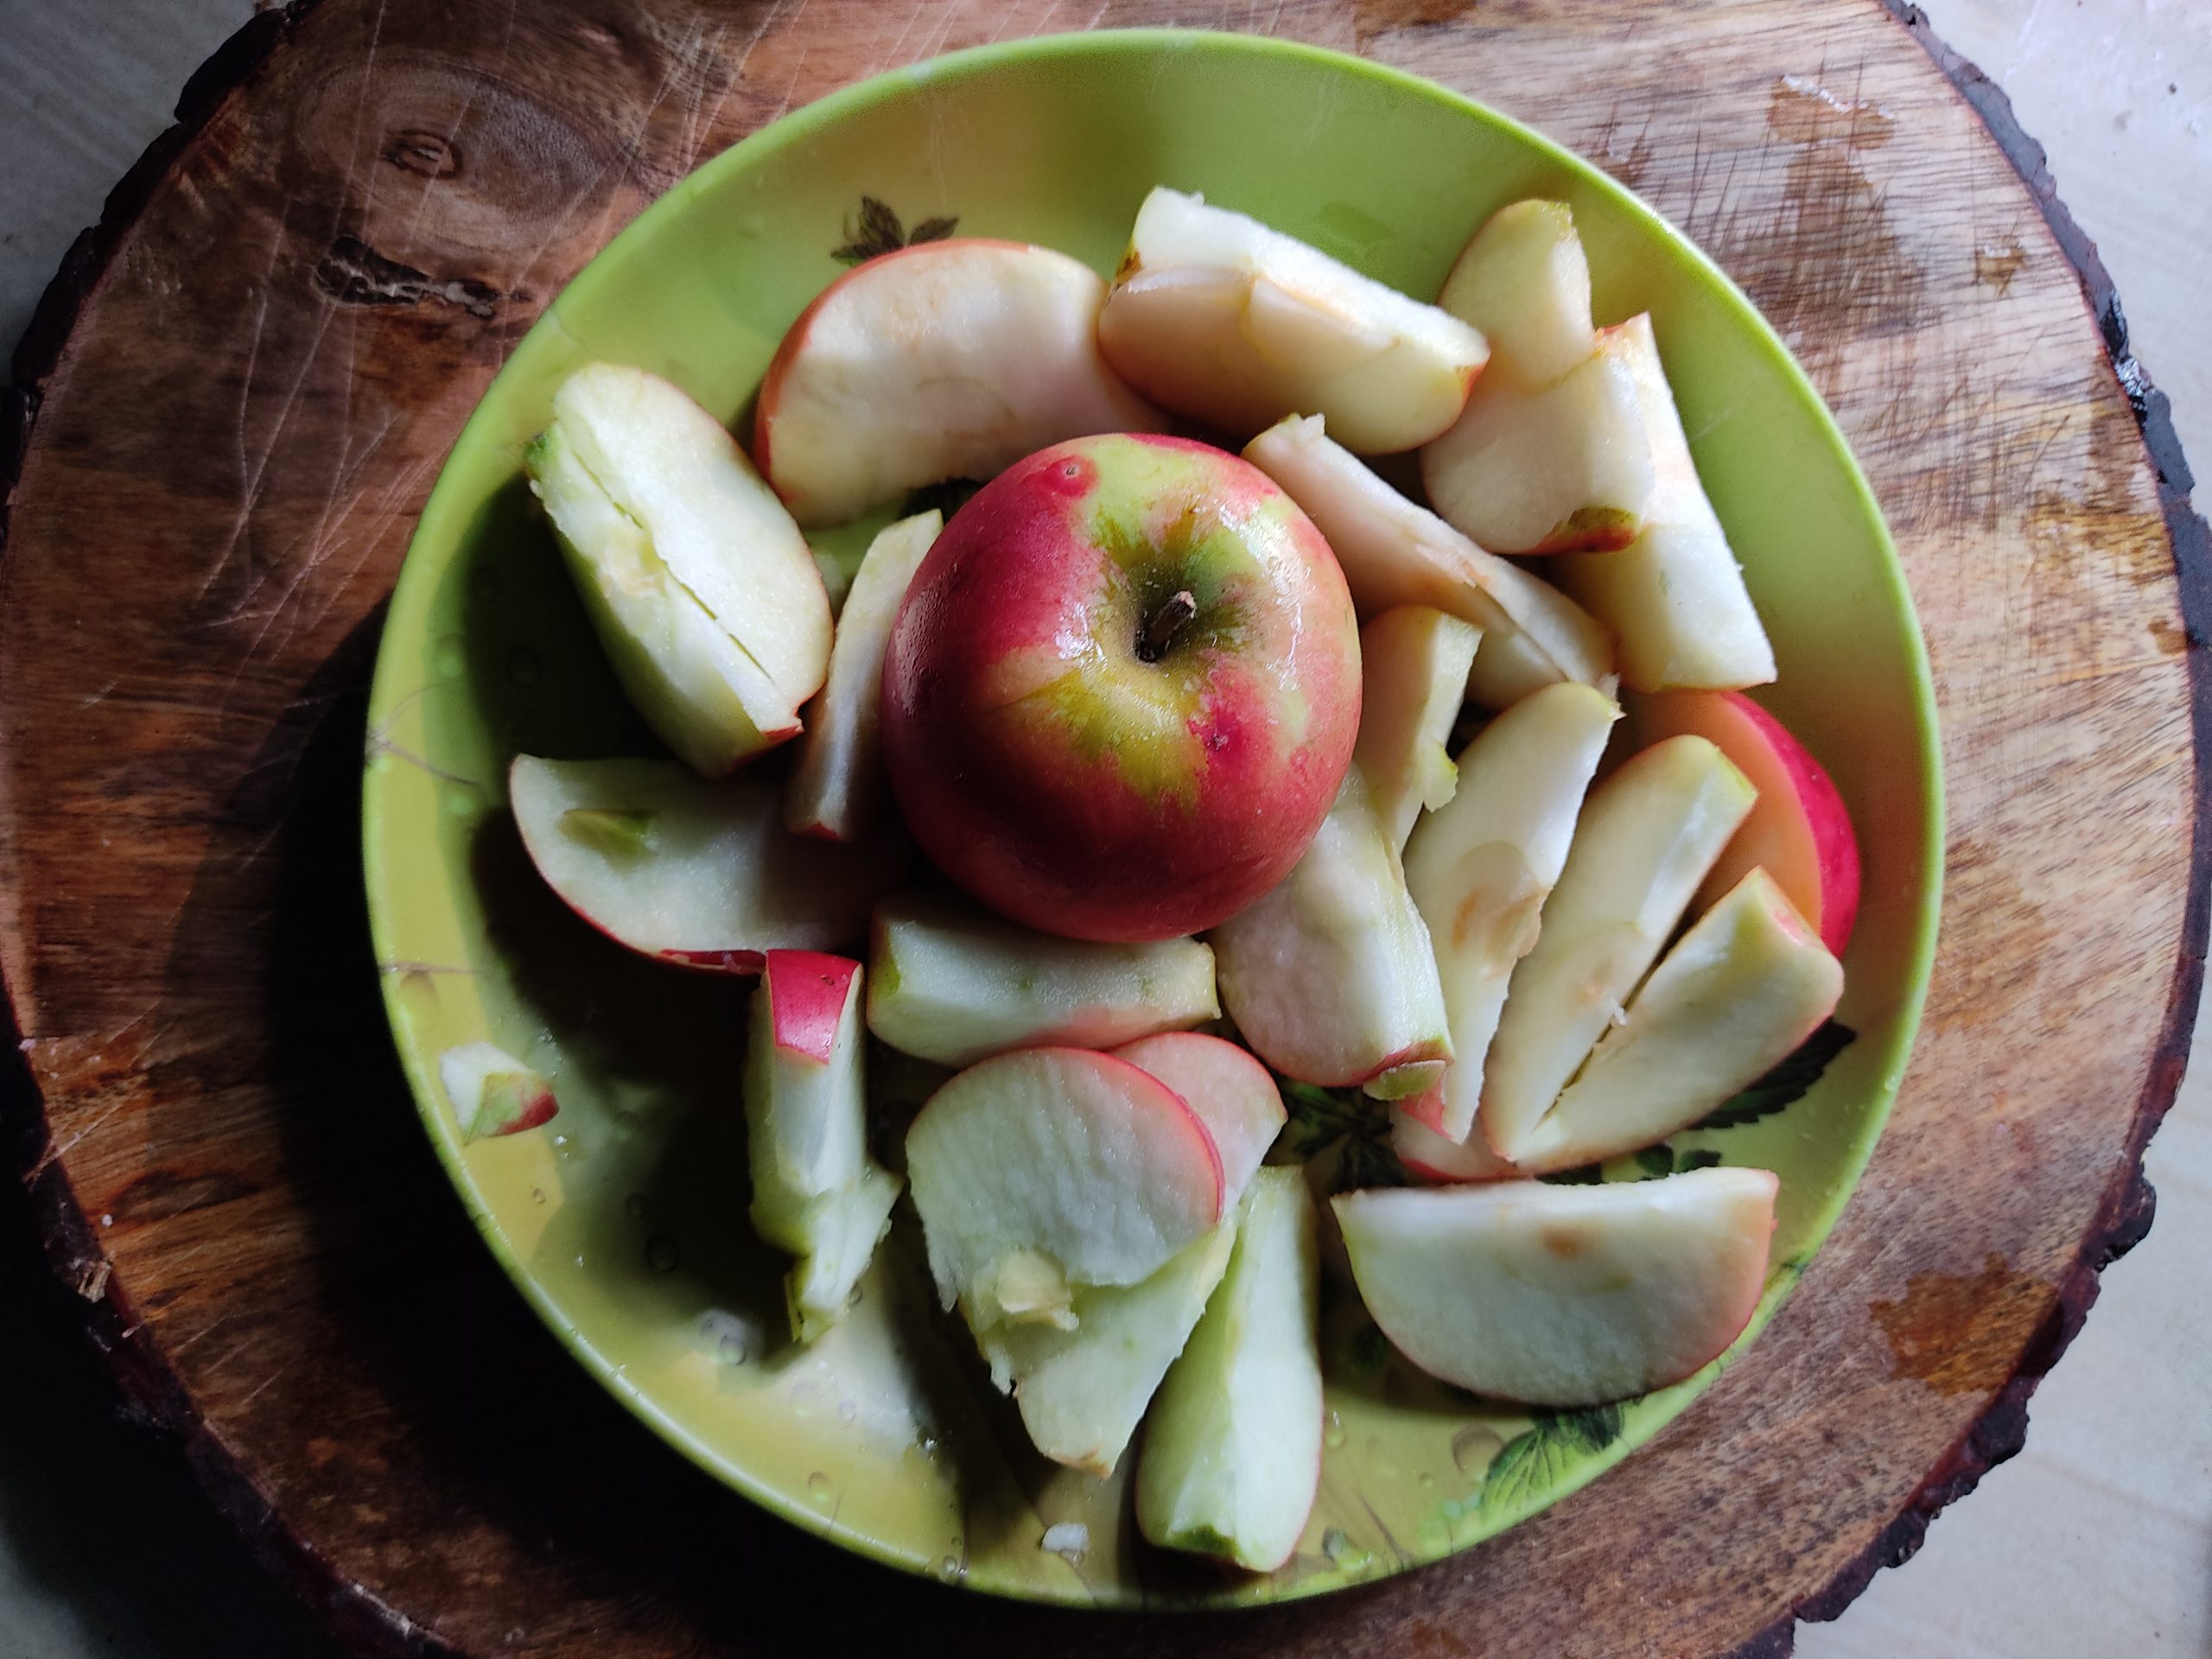 Apple in plate